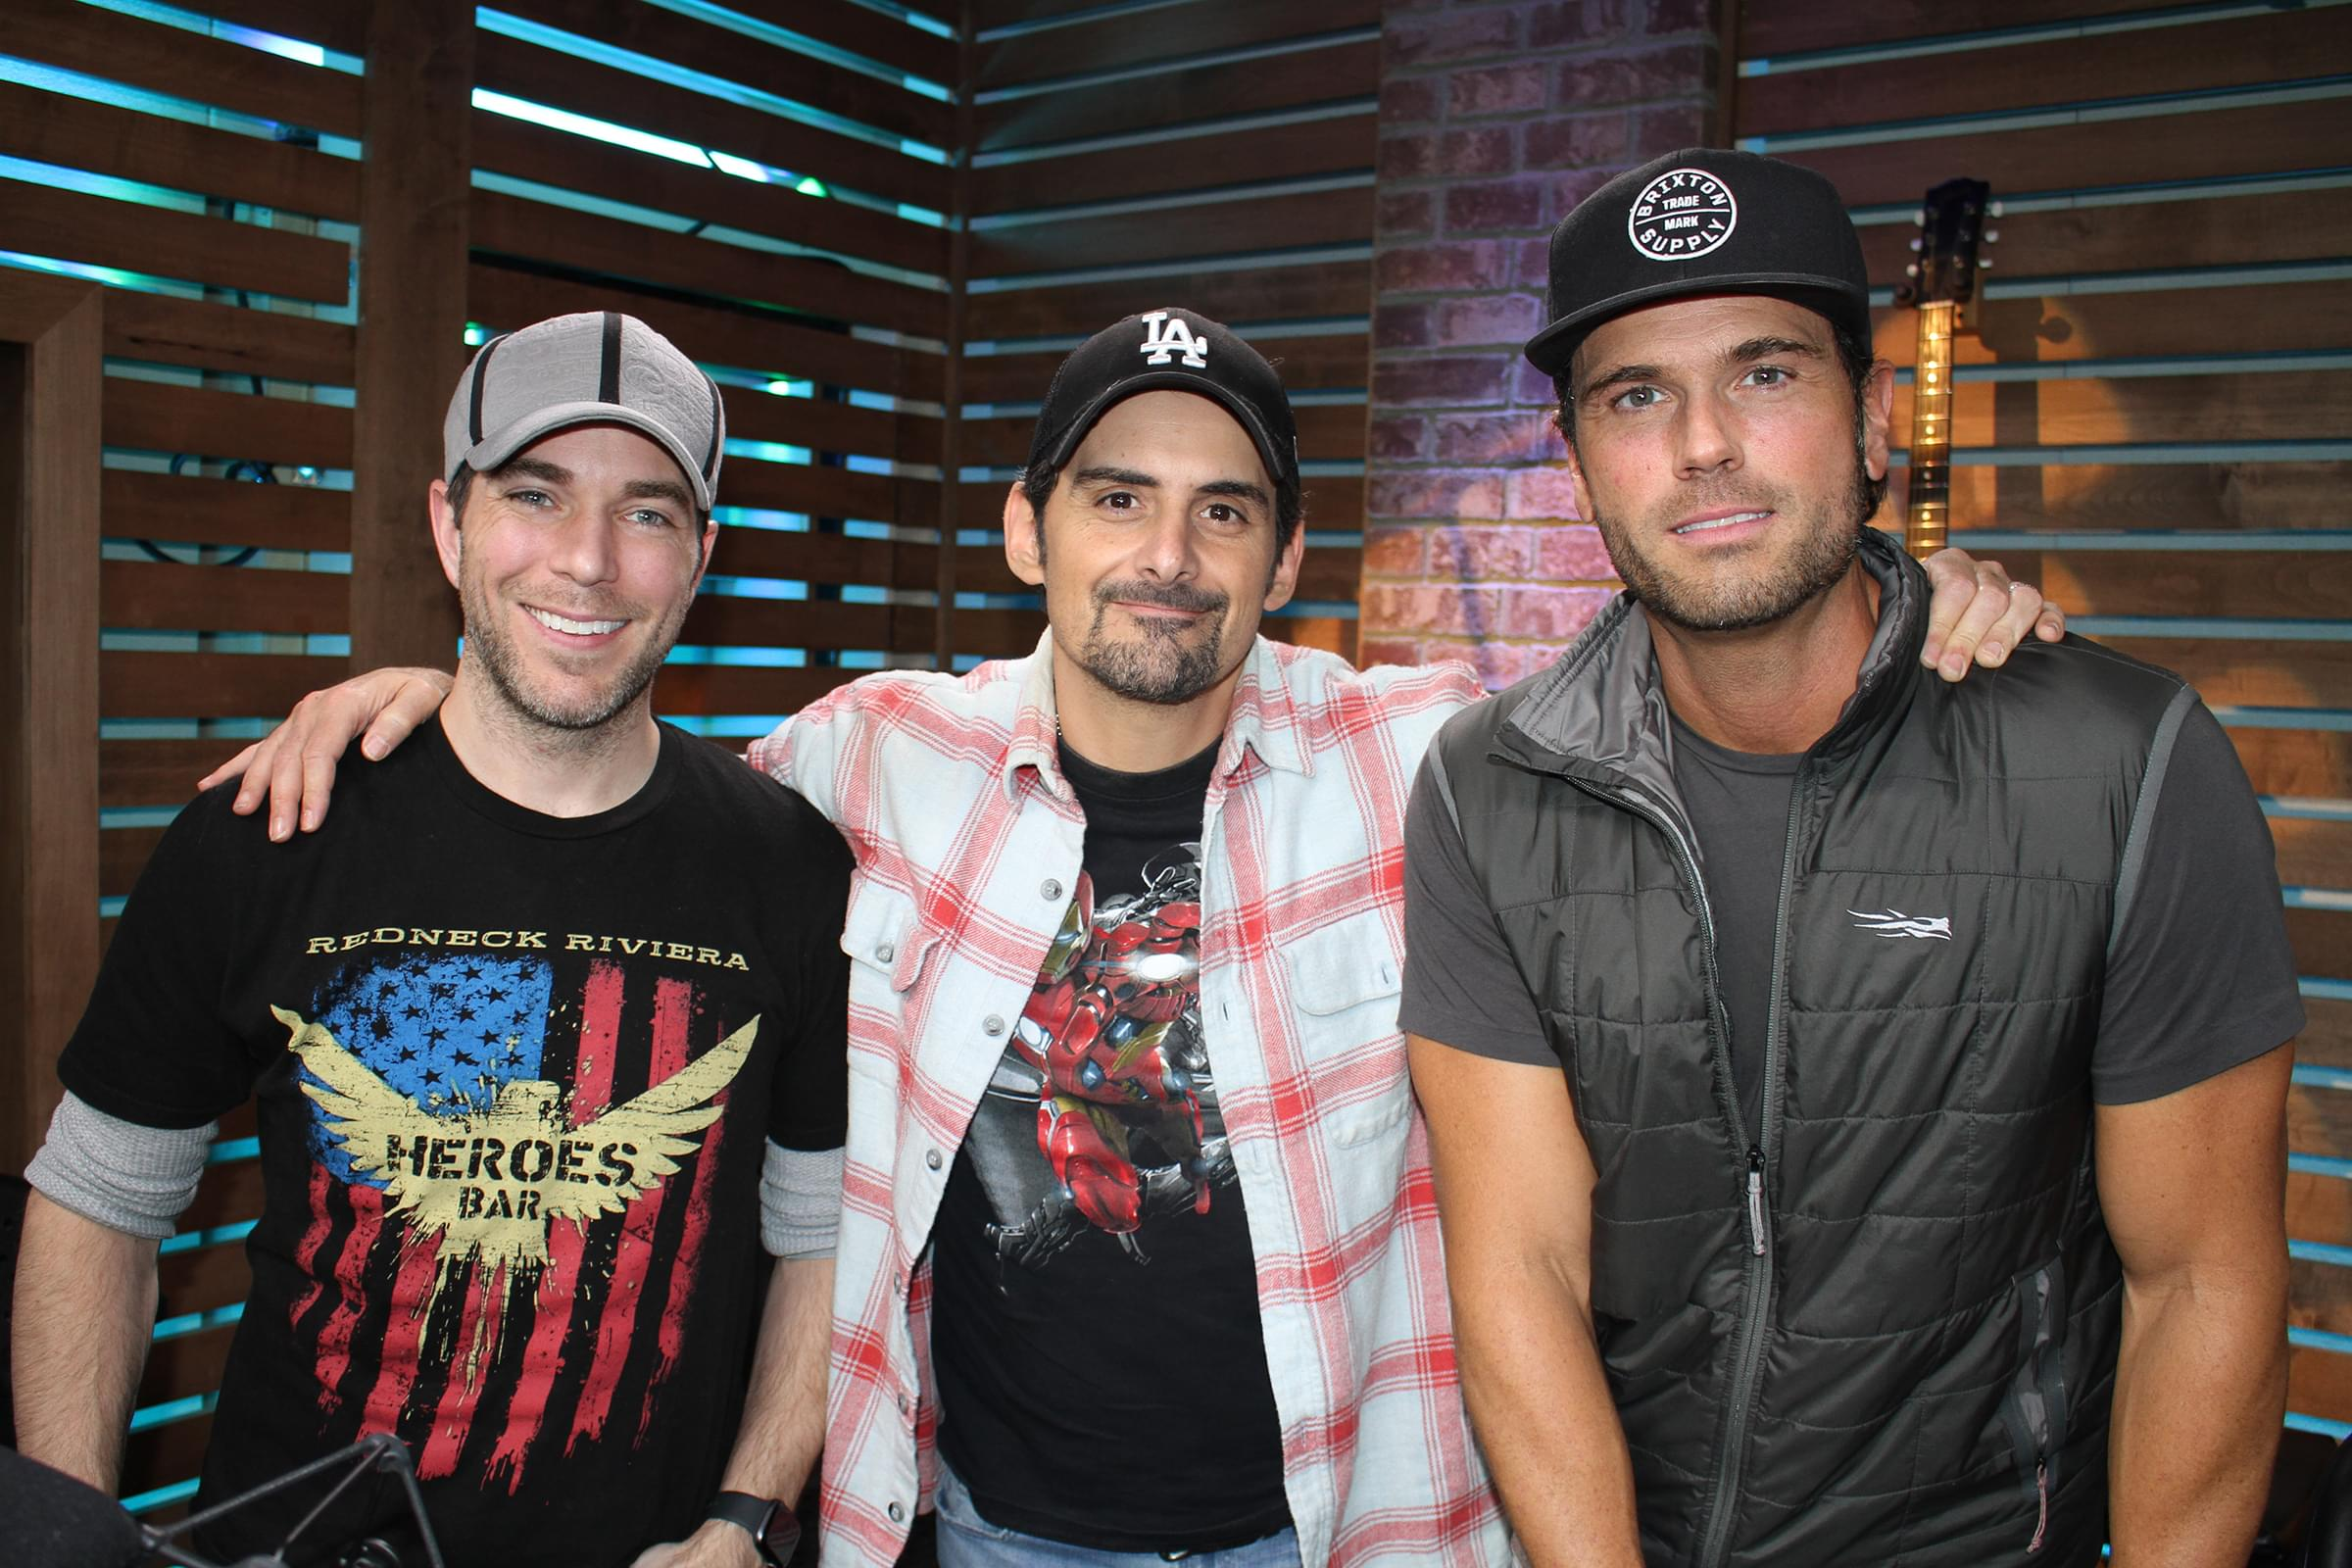 In Case You Missed It… Brad Paisley Co-Hosted the Show Ahead of Hosting the CMA Awards